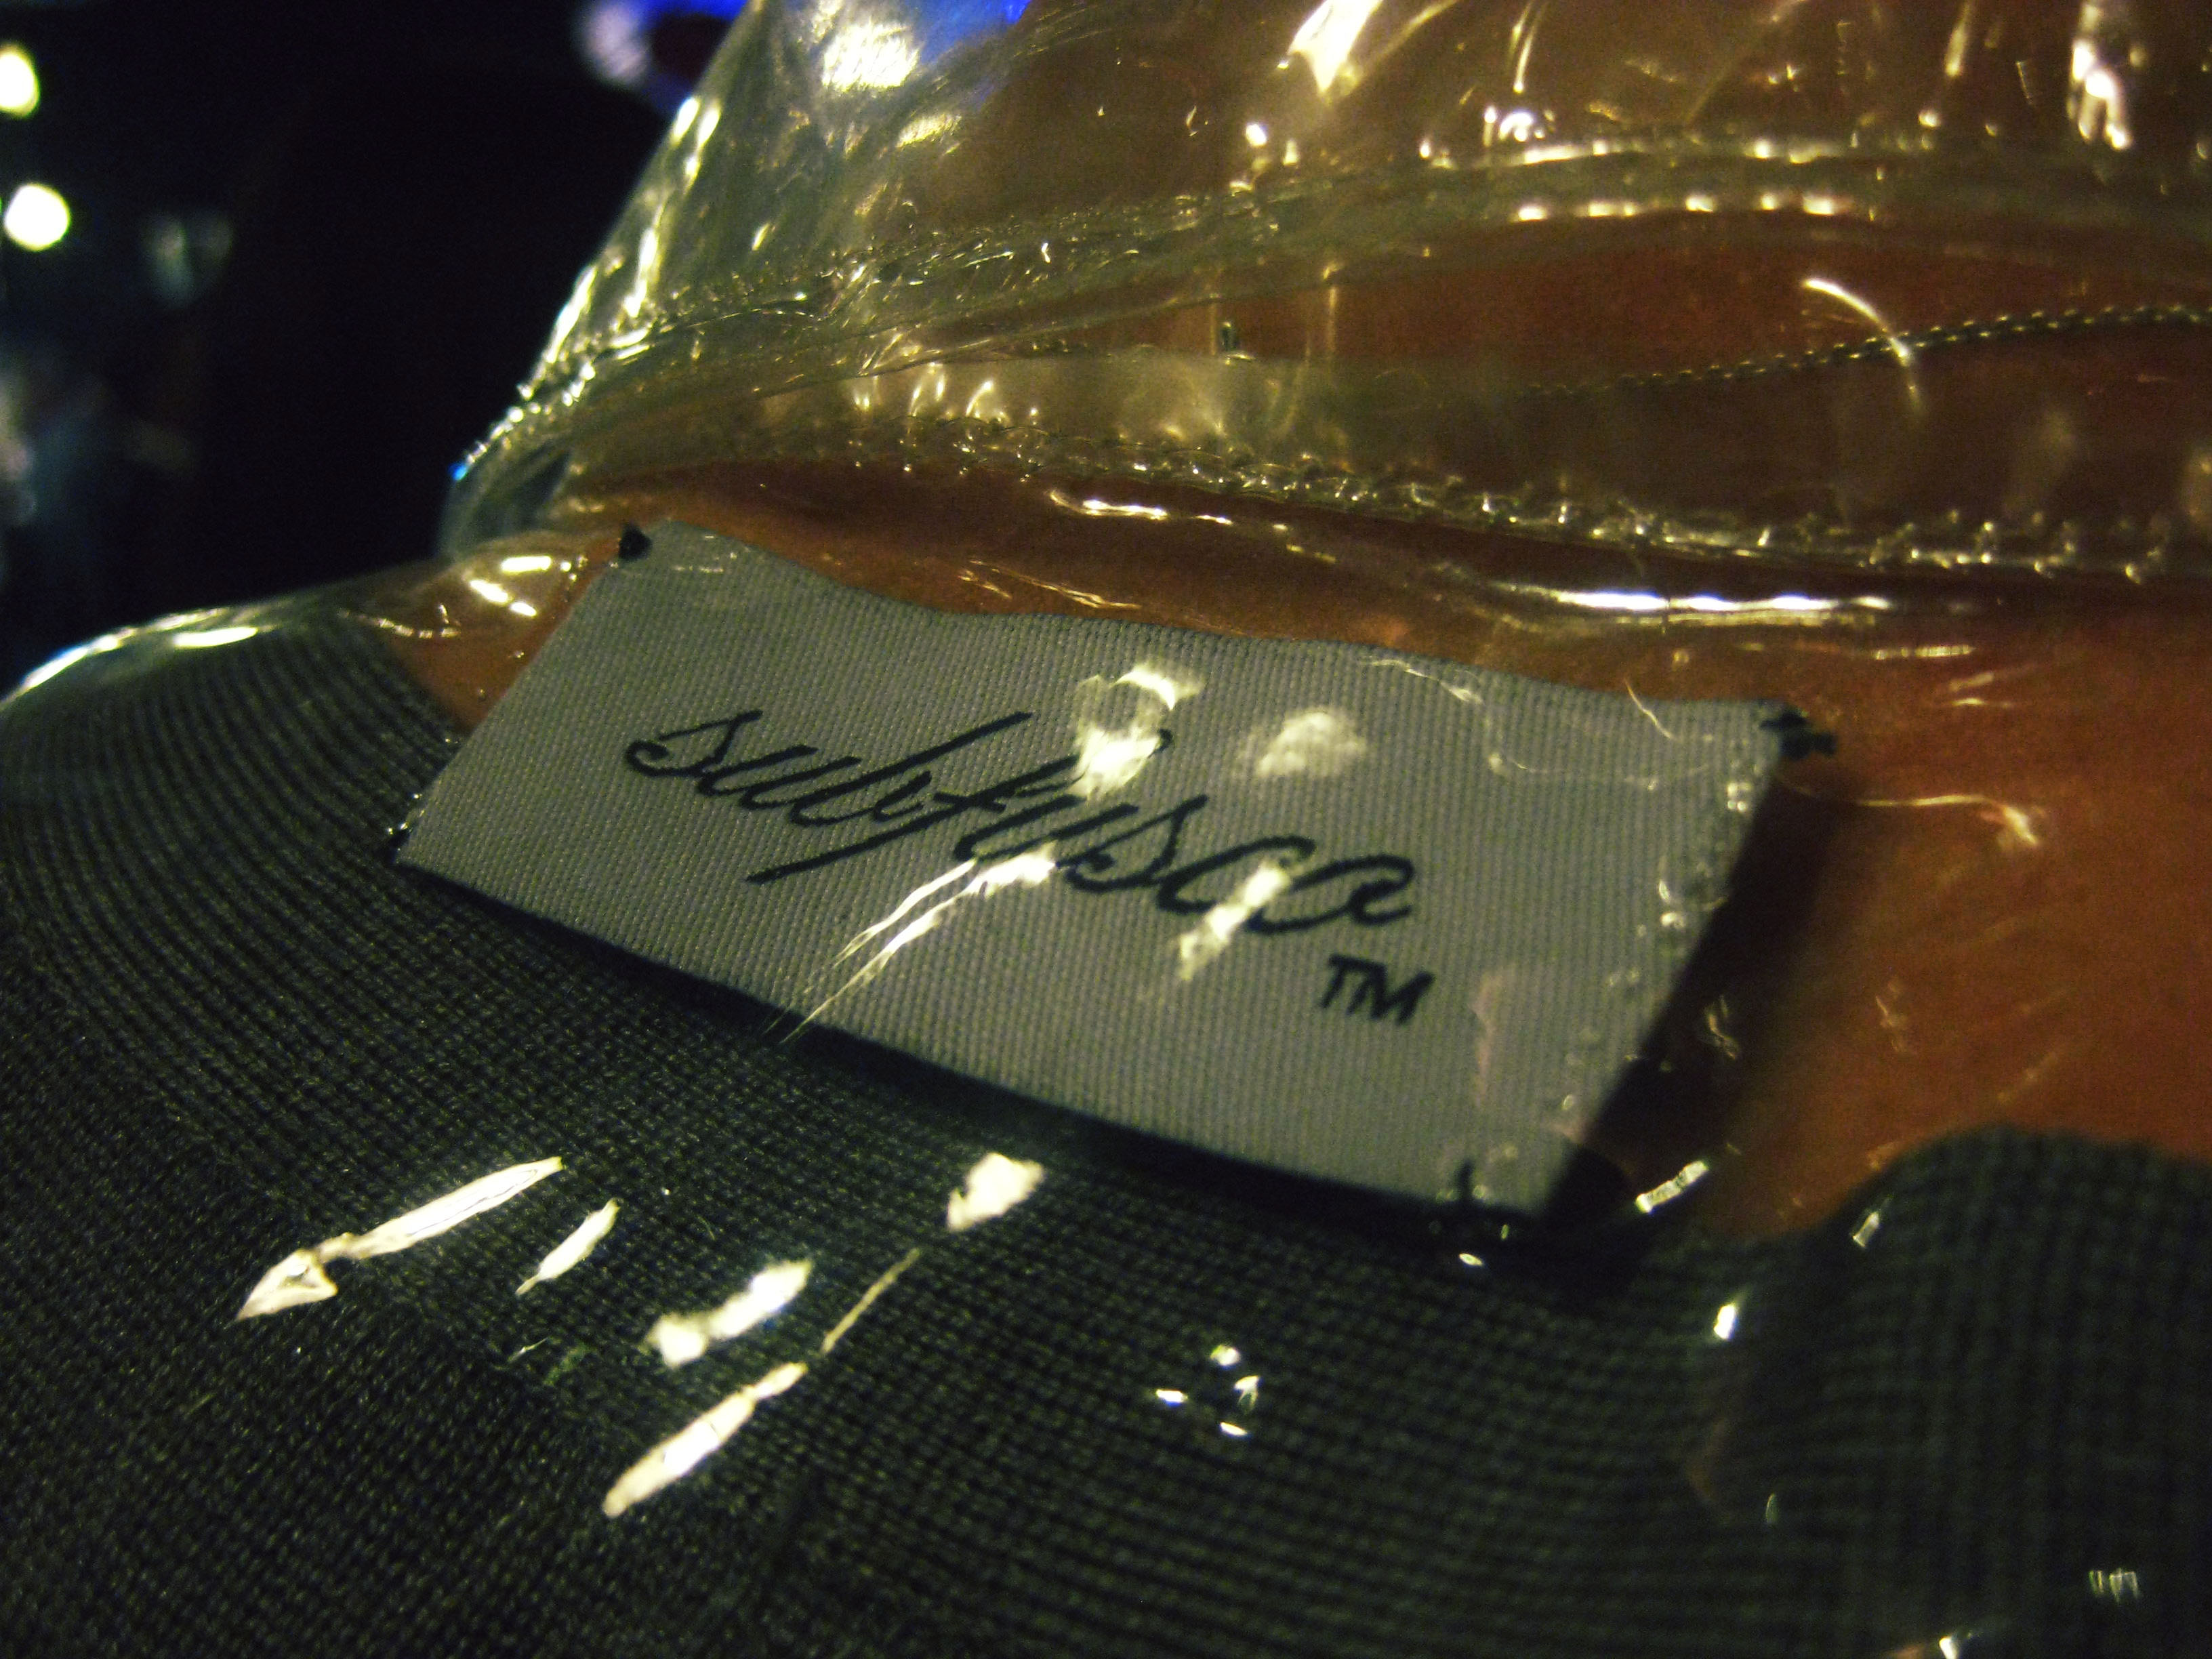 Close up of the Subfusco label sewn into a see-through plastic jacket.